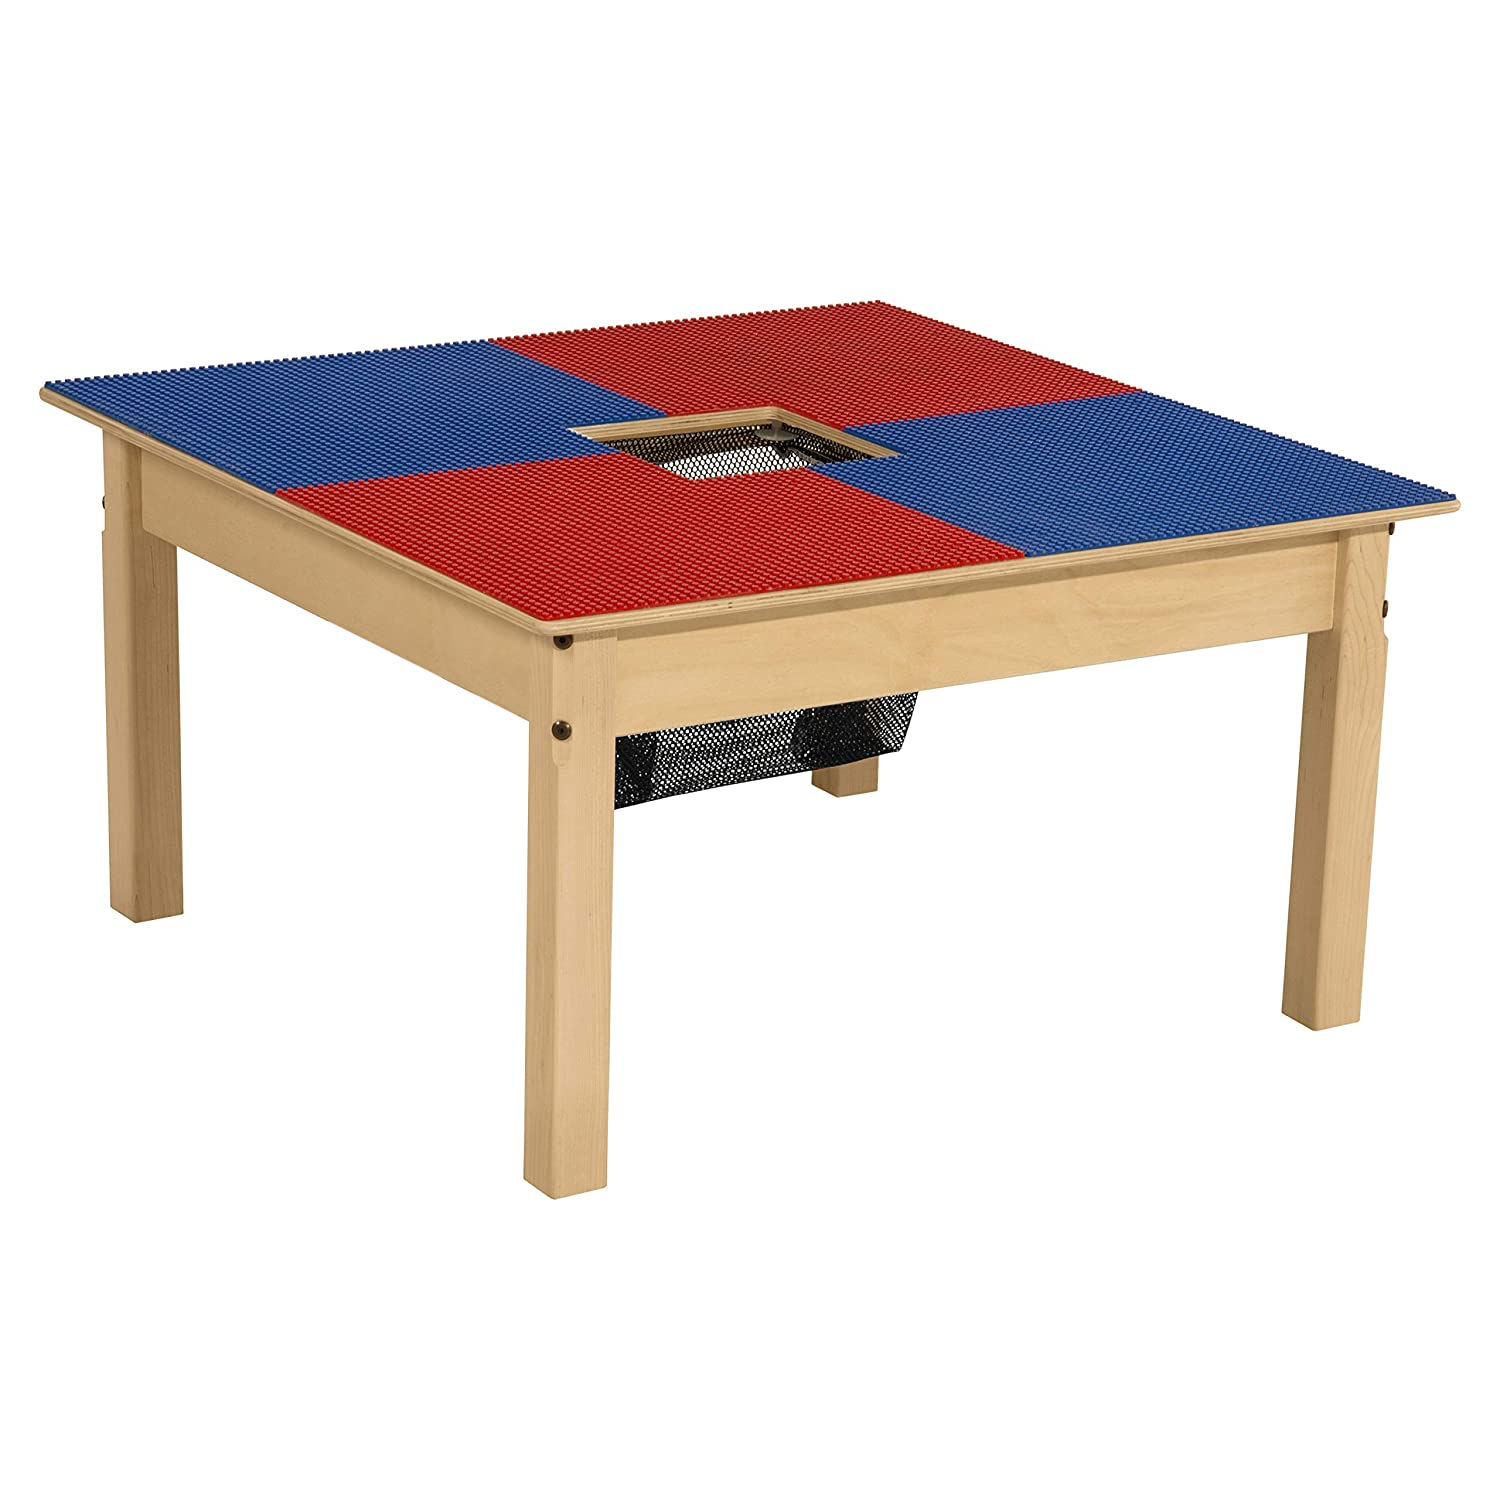 Wood Designs Time-2-Play Lego Table with Storage for Kids/Toddlers